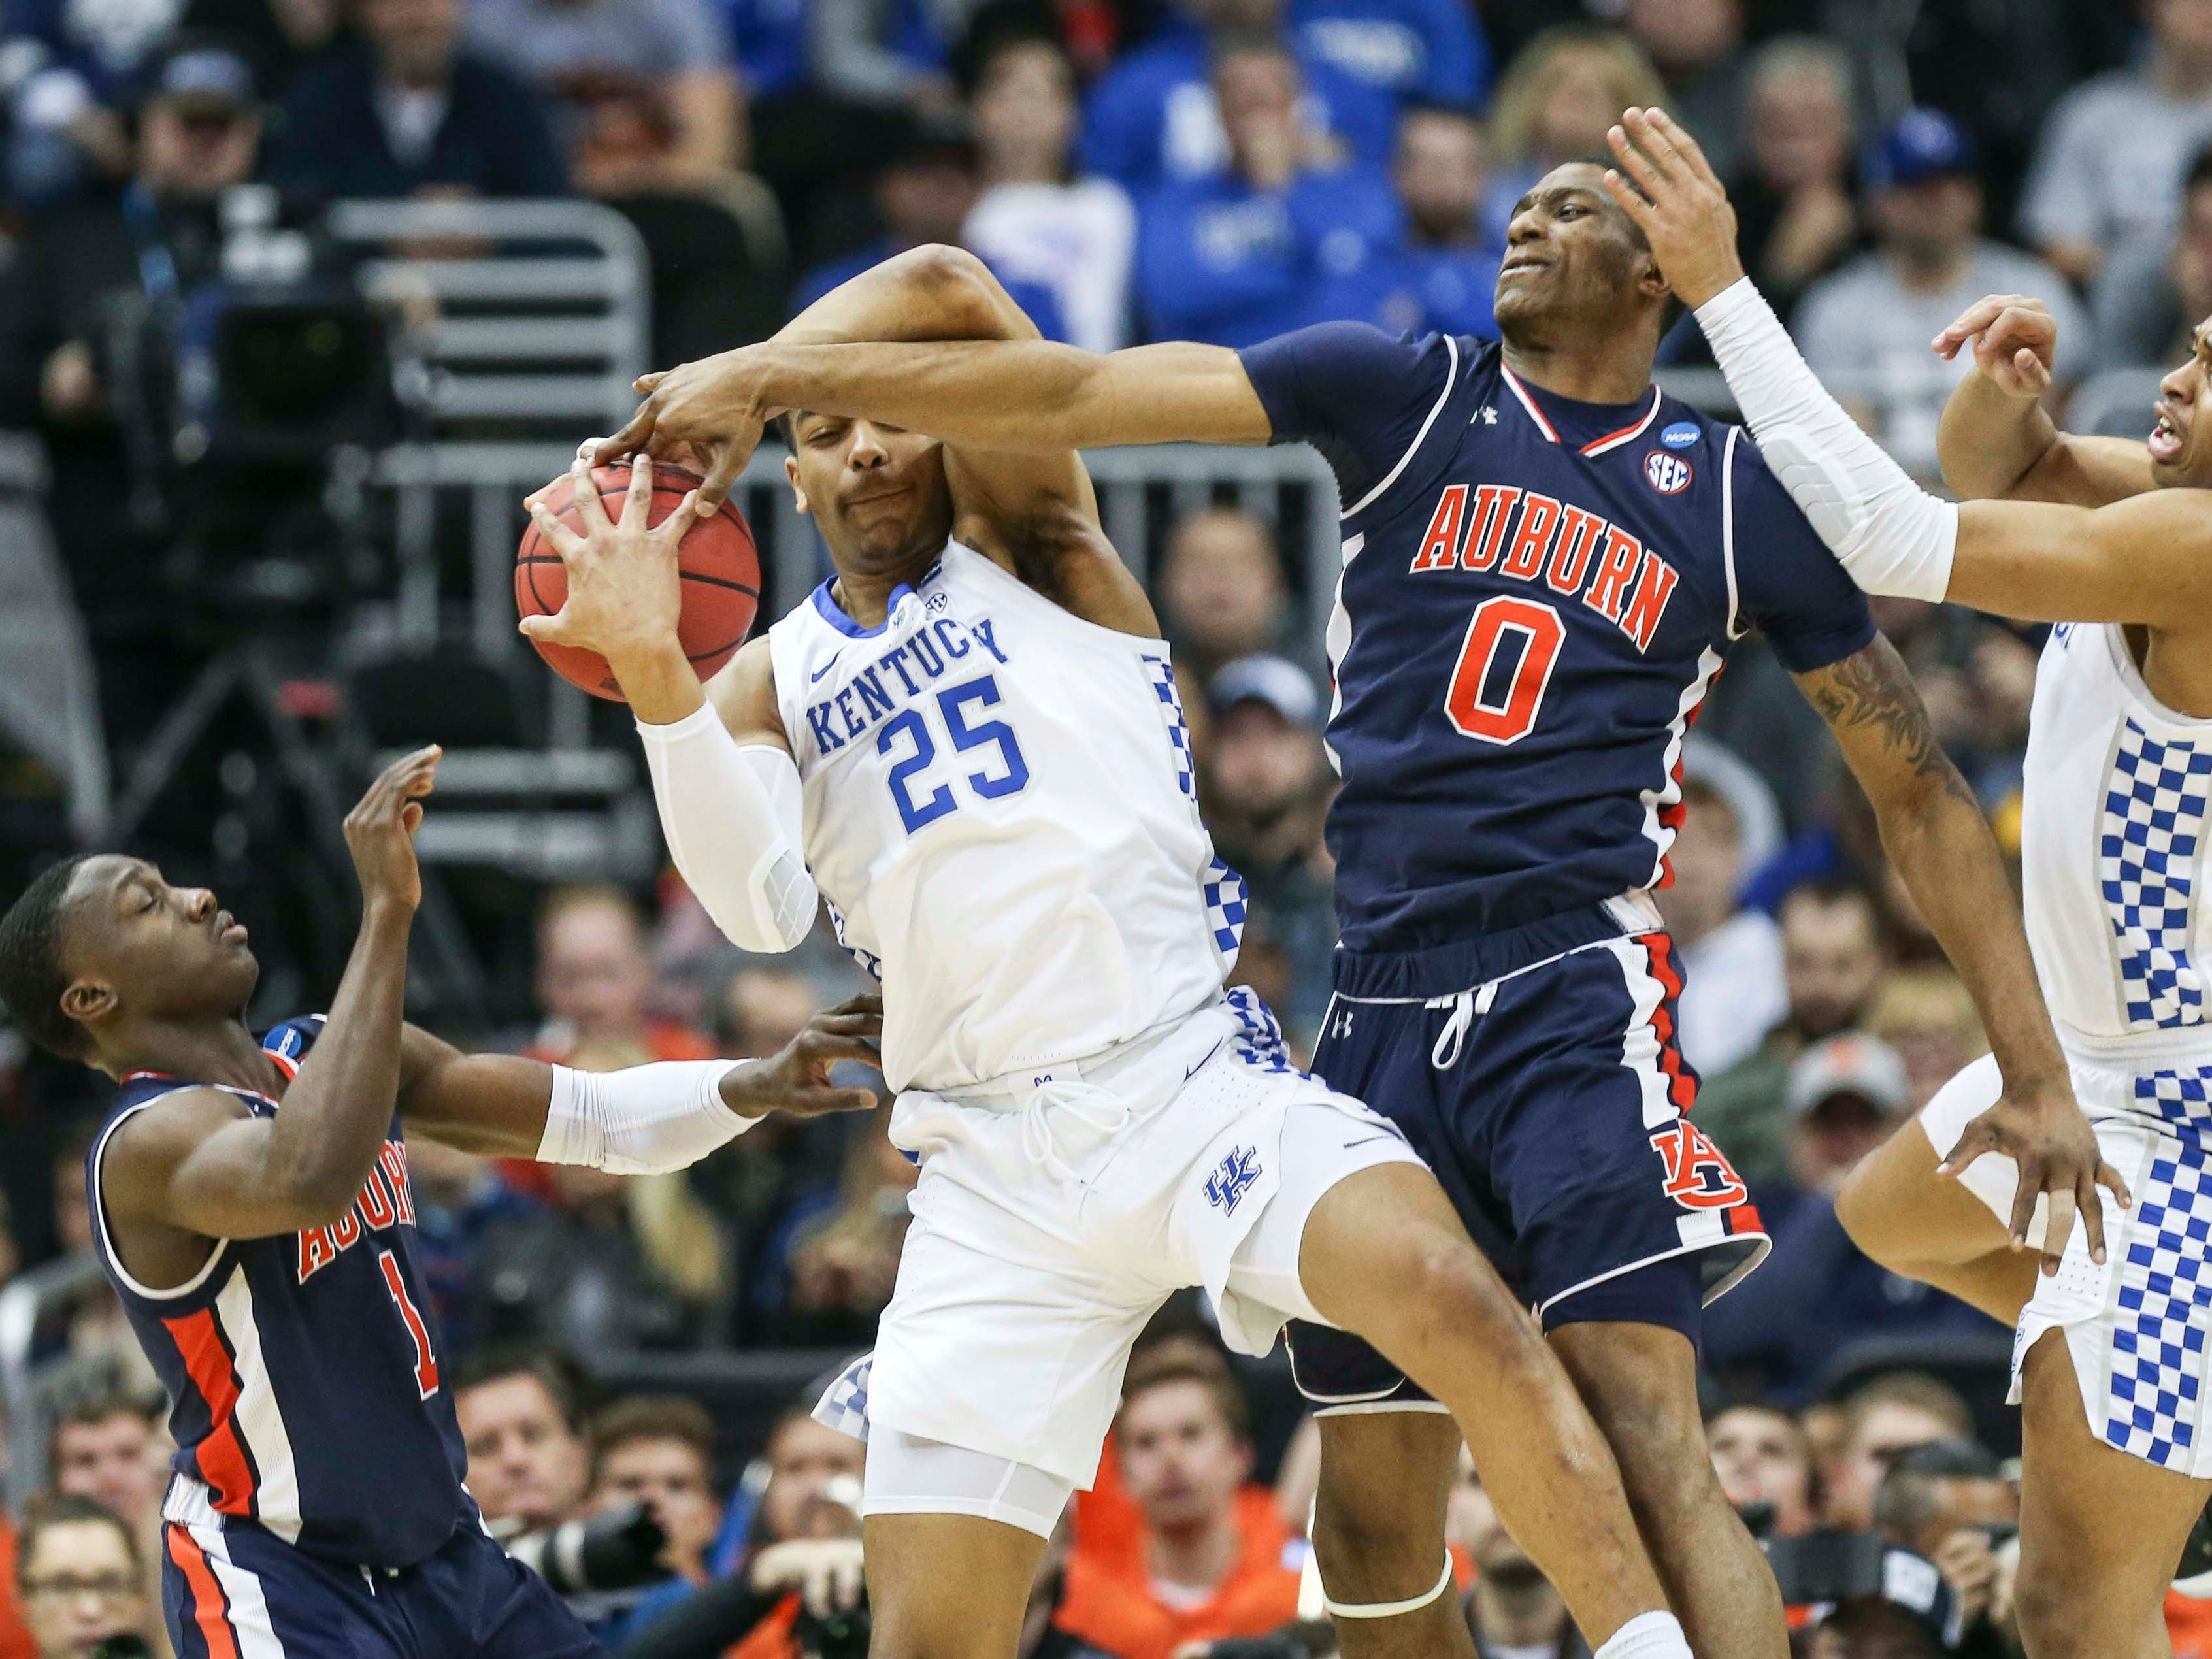 Kentucky's PJ Washington grabs a rebound in the first half against Auburn Sunday aftermnoon in the Elite Eight. March 31, 2019